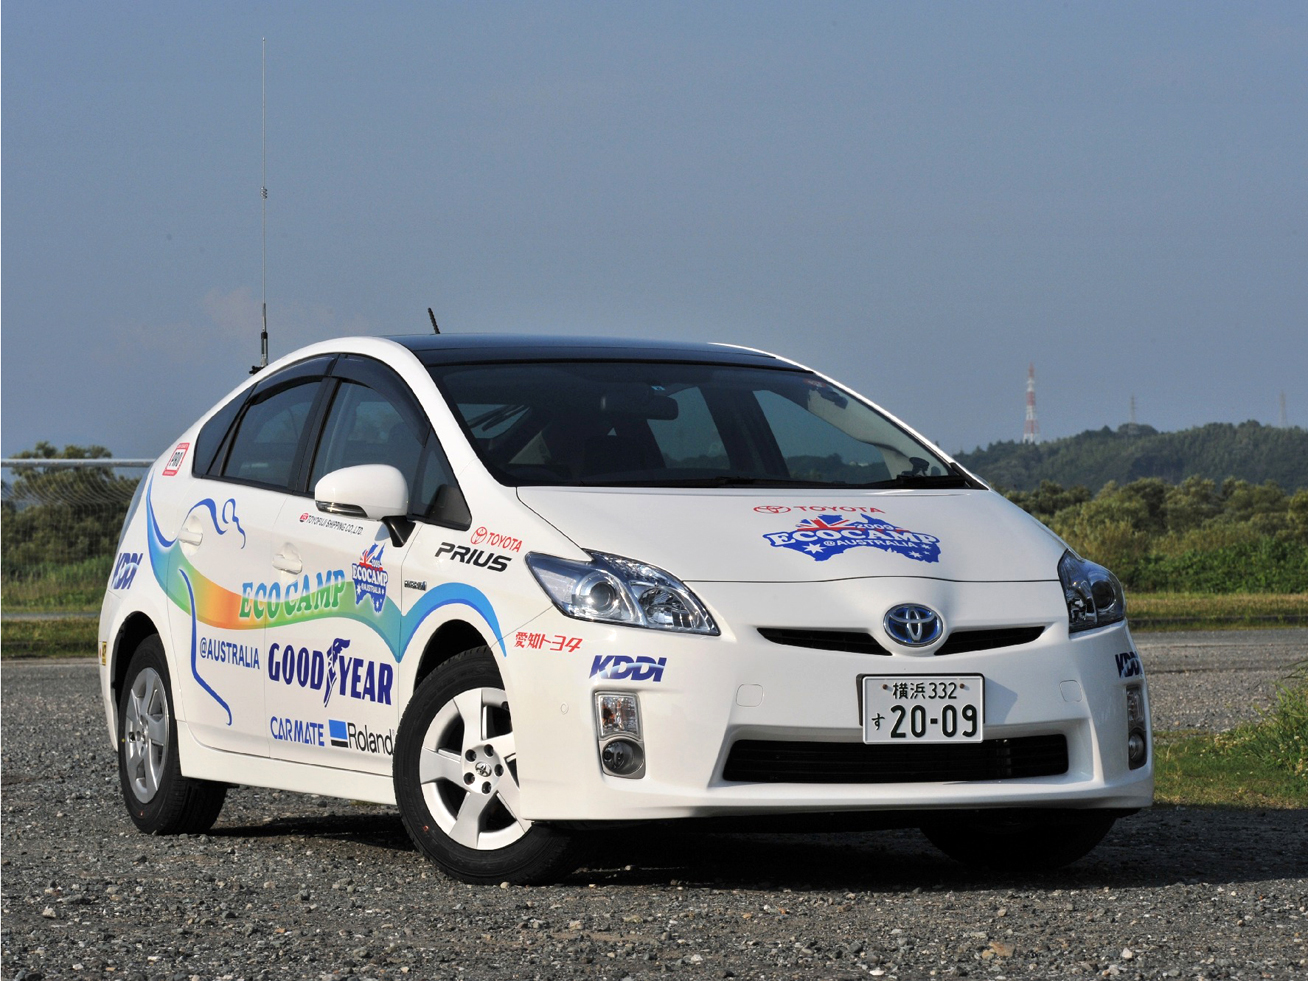 The official ECOCAMP in Australia 2009 Prius, decorated with full-color Roland graphics.